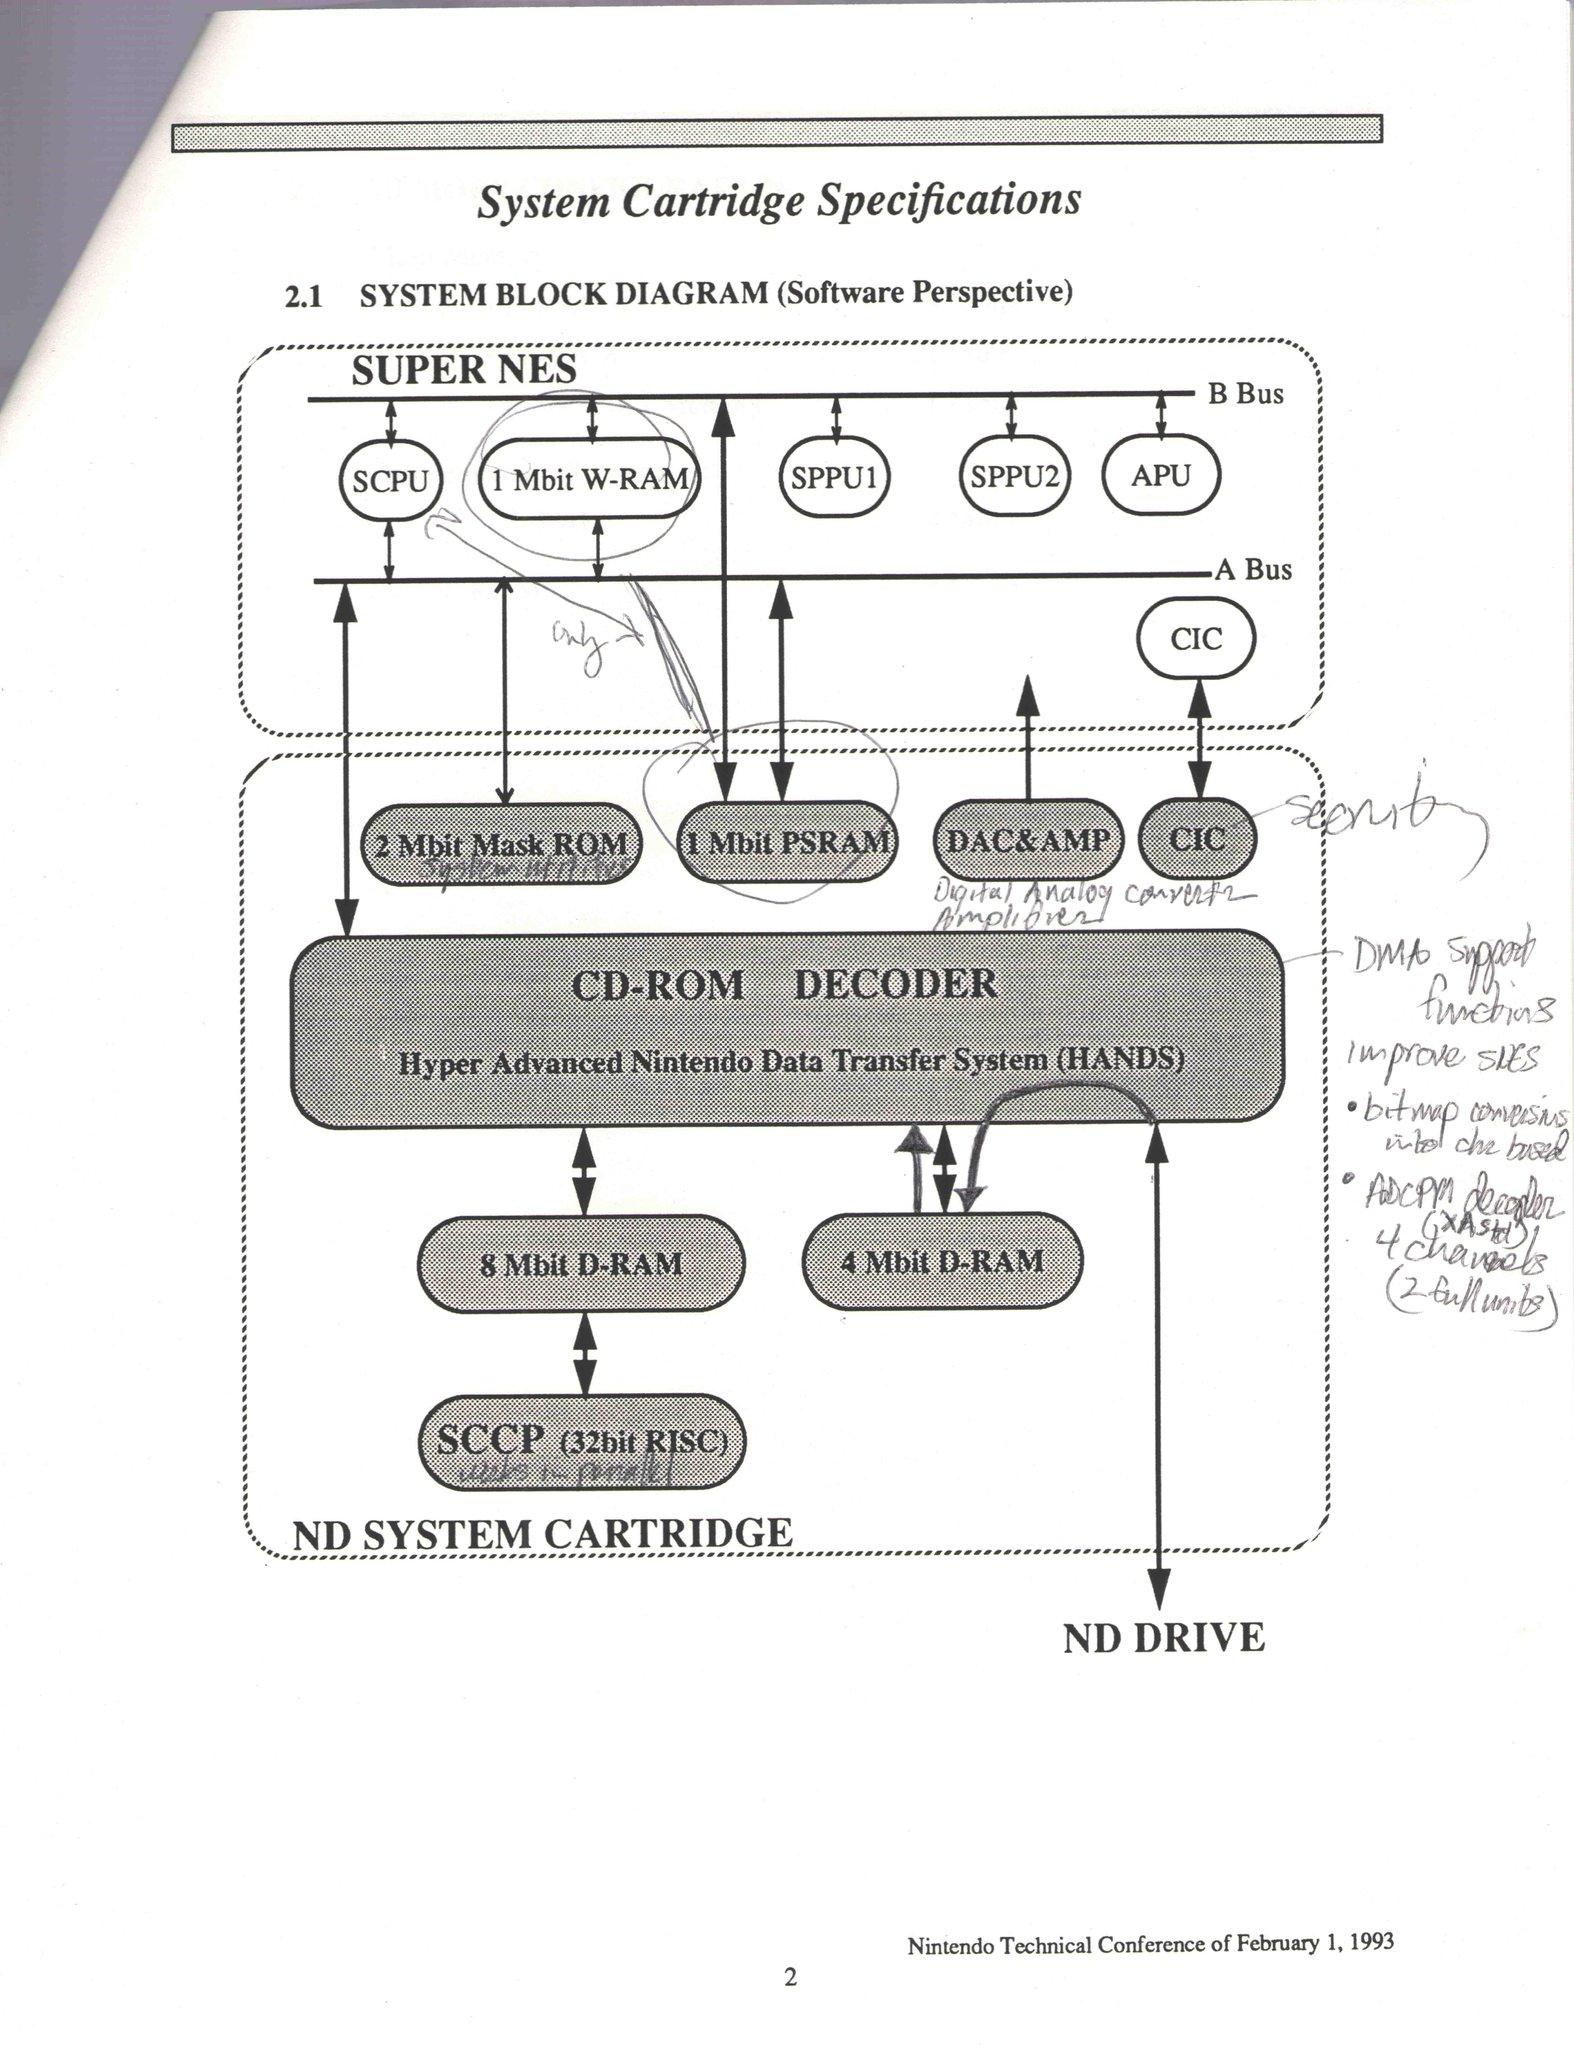 Snes Cd Technical Overview Internal Nintendo Document Uncovered Playstation 4 Block Diagram Click To Expand